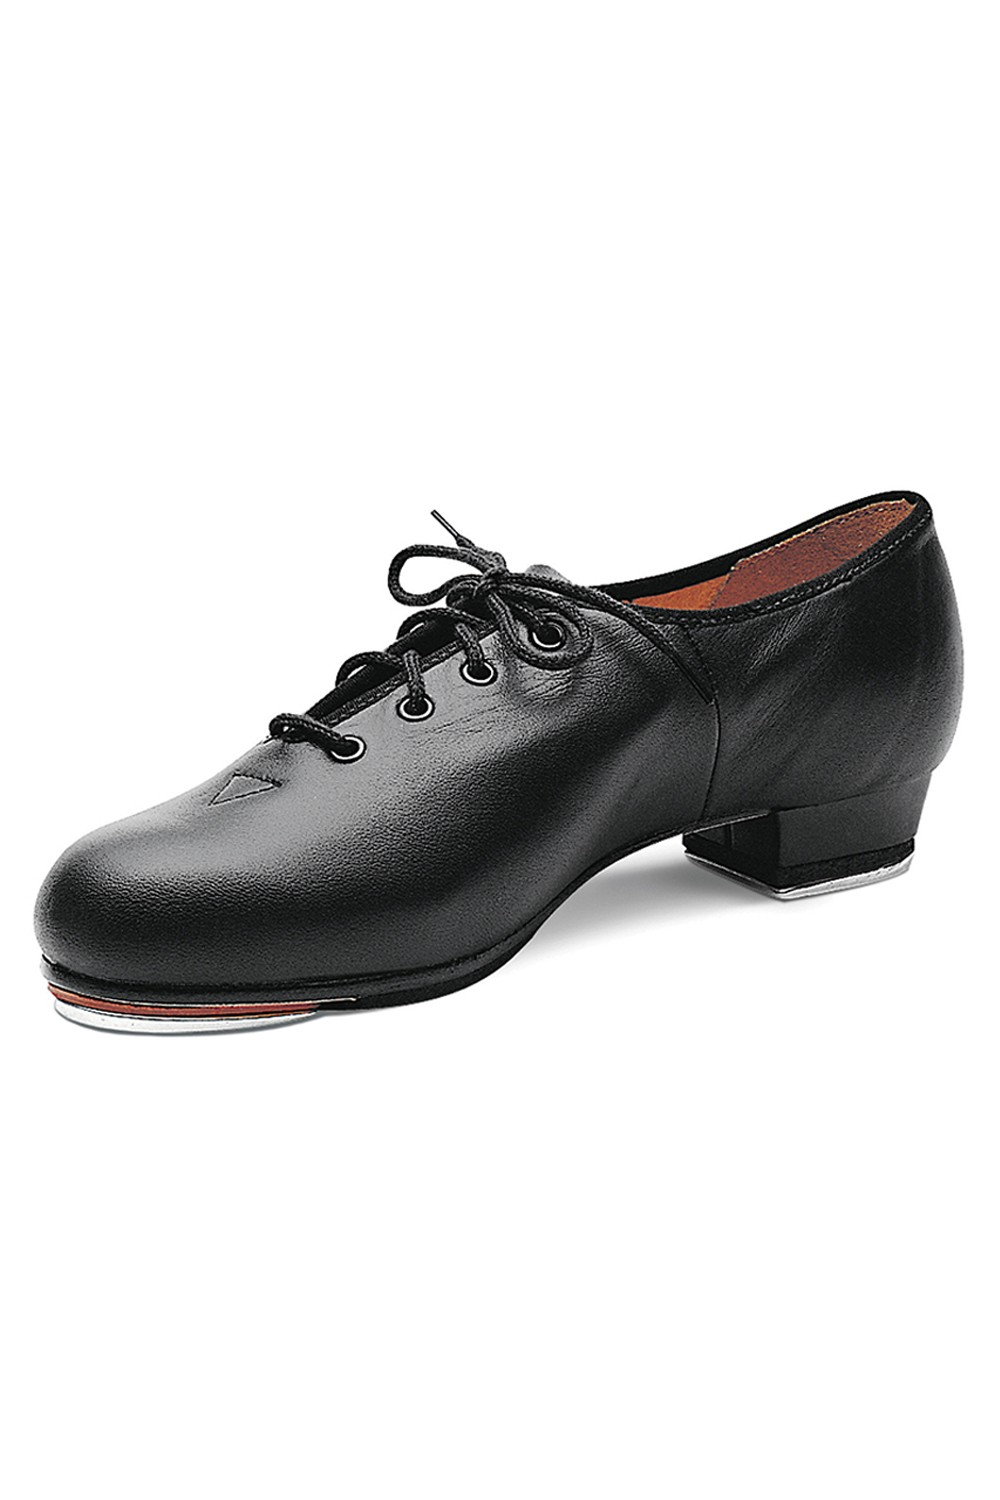 Jazz Claqué Women's Tap Shoes